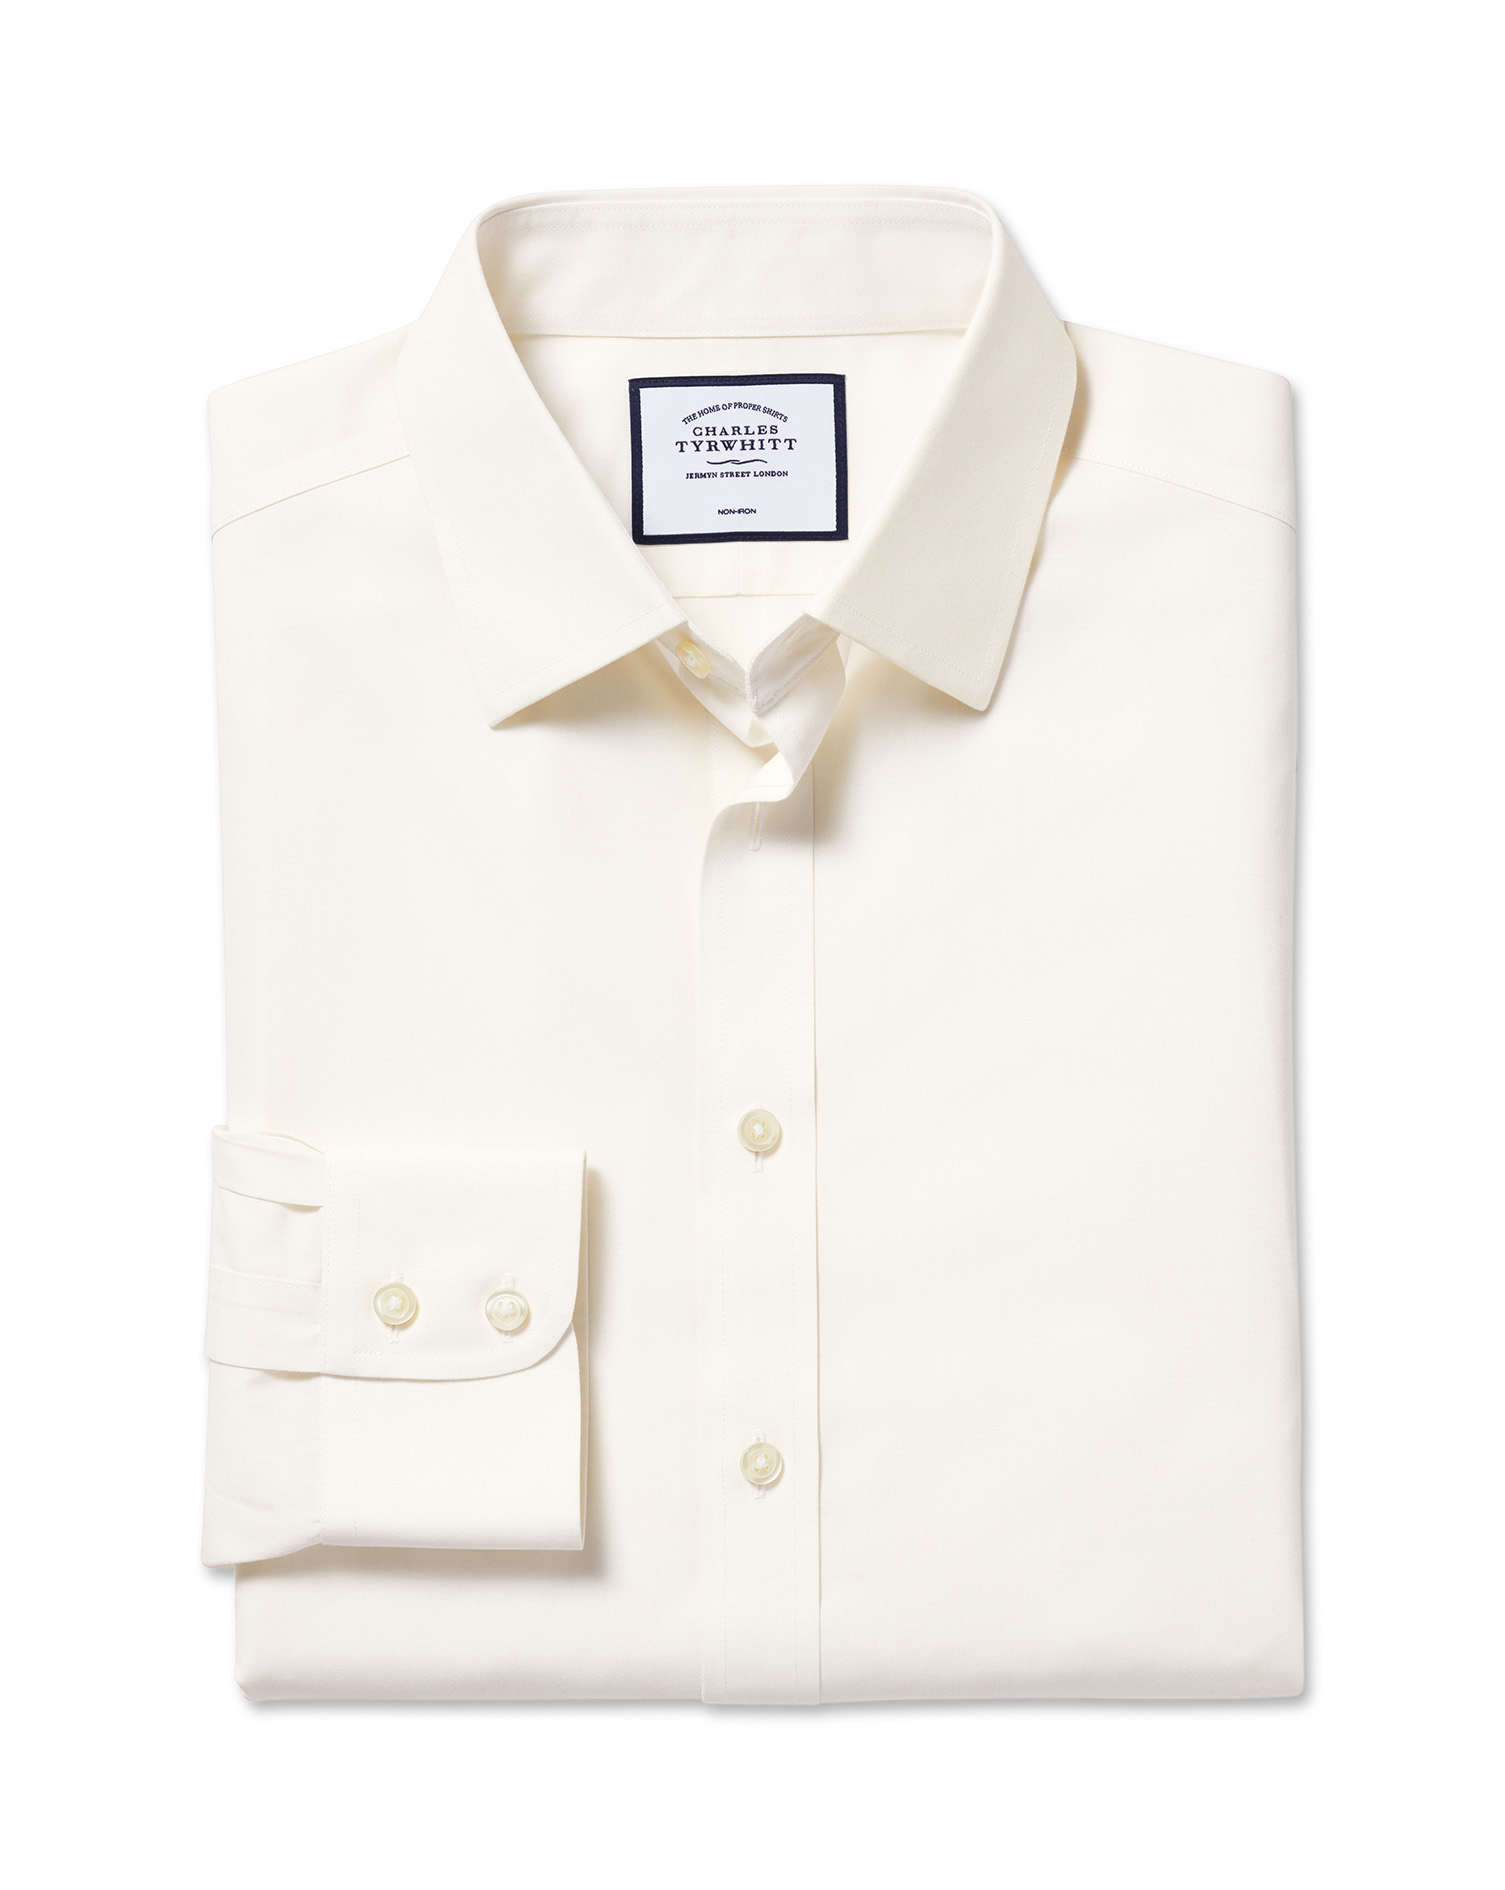 Classic Fit Non-Iron Poplin Cream Cotton Formal Shirt Single Cuff Size 17/37 by Charles Tyrwhitt